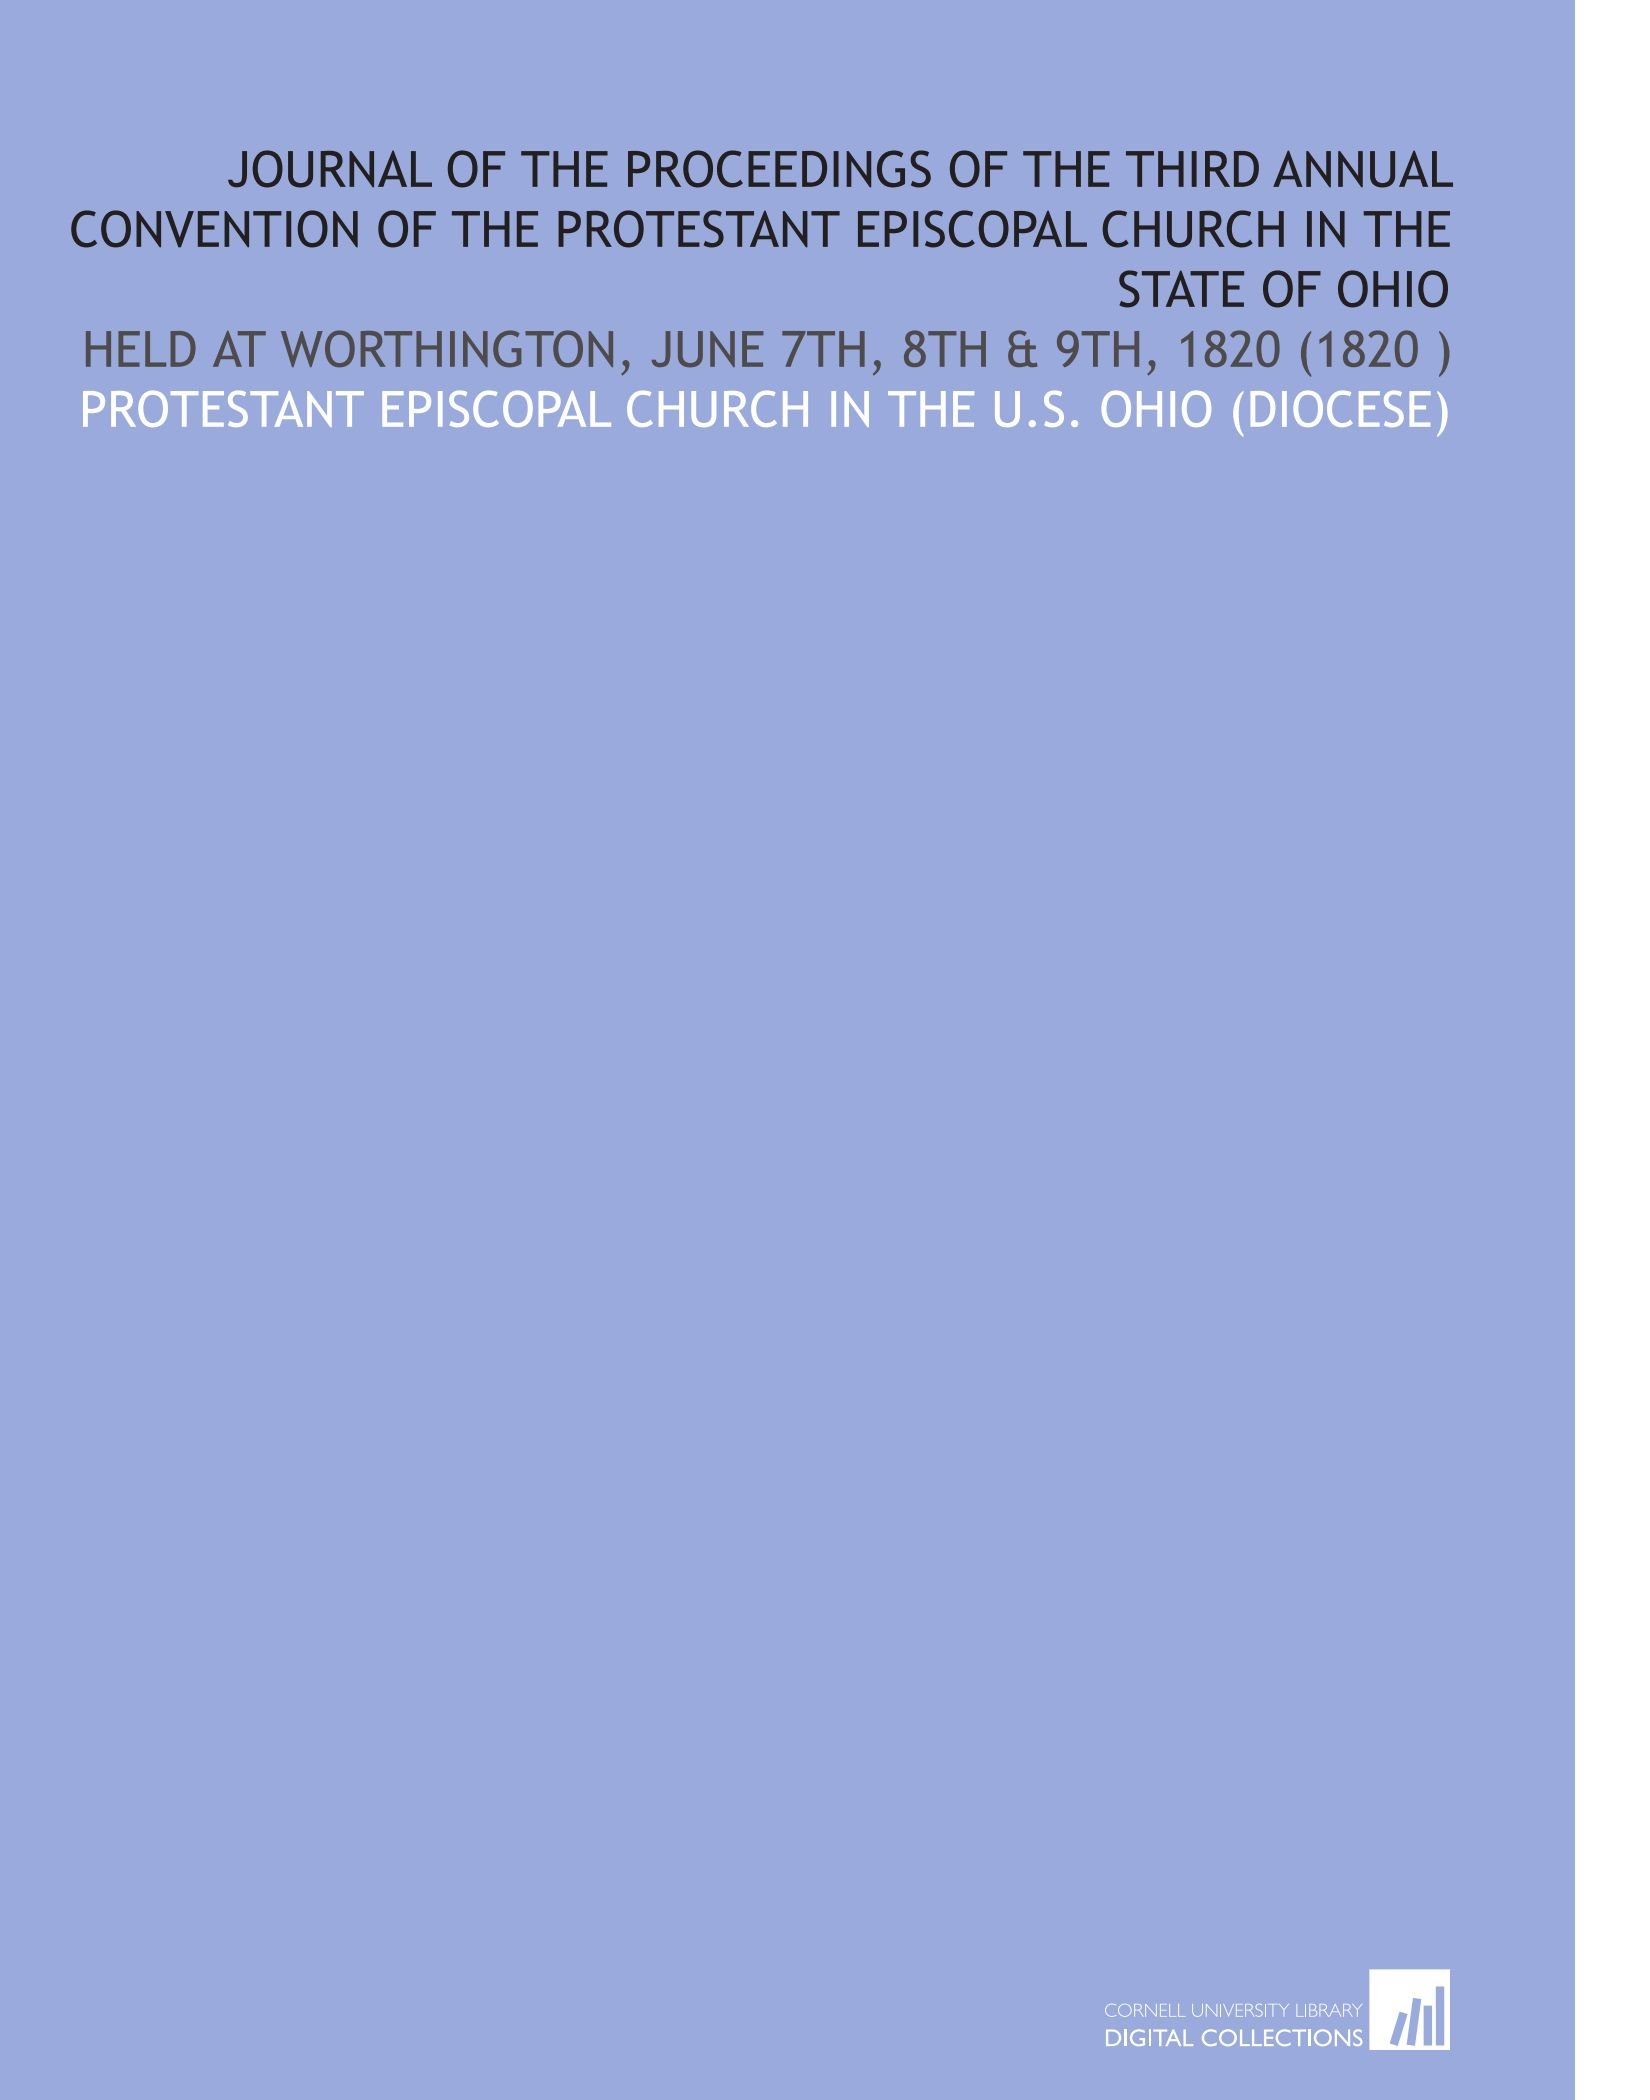 Journal of the Proceedings of the Third Annual Convention of the Protestant Episcopal Church in the State of Ohio: Held at Worthington, June 7th, 8th & 9th, 1820 (1820) pdf